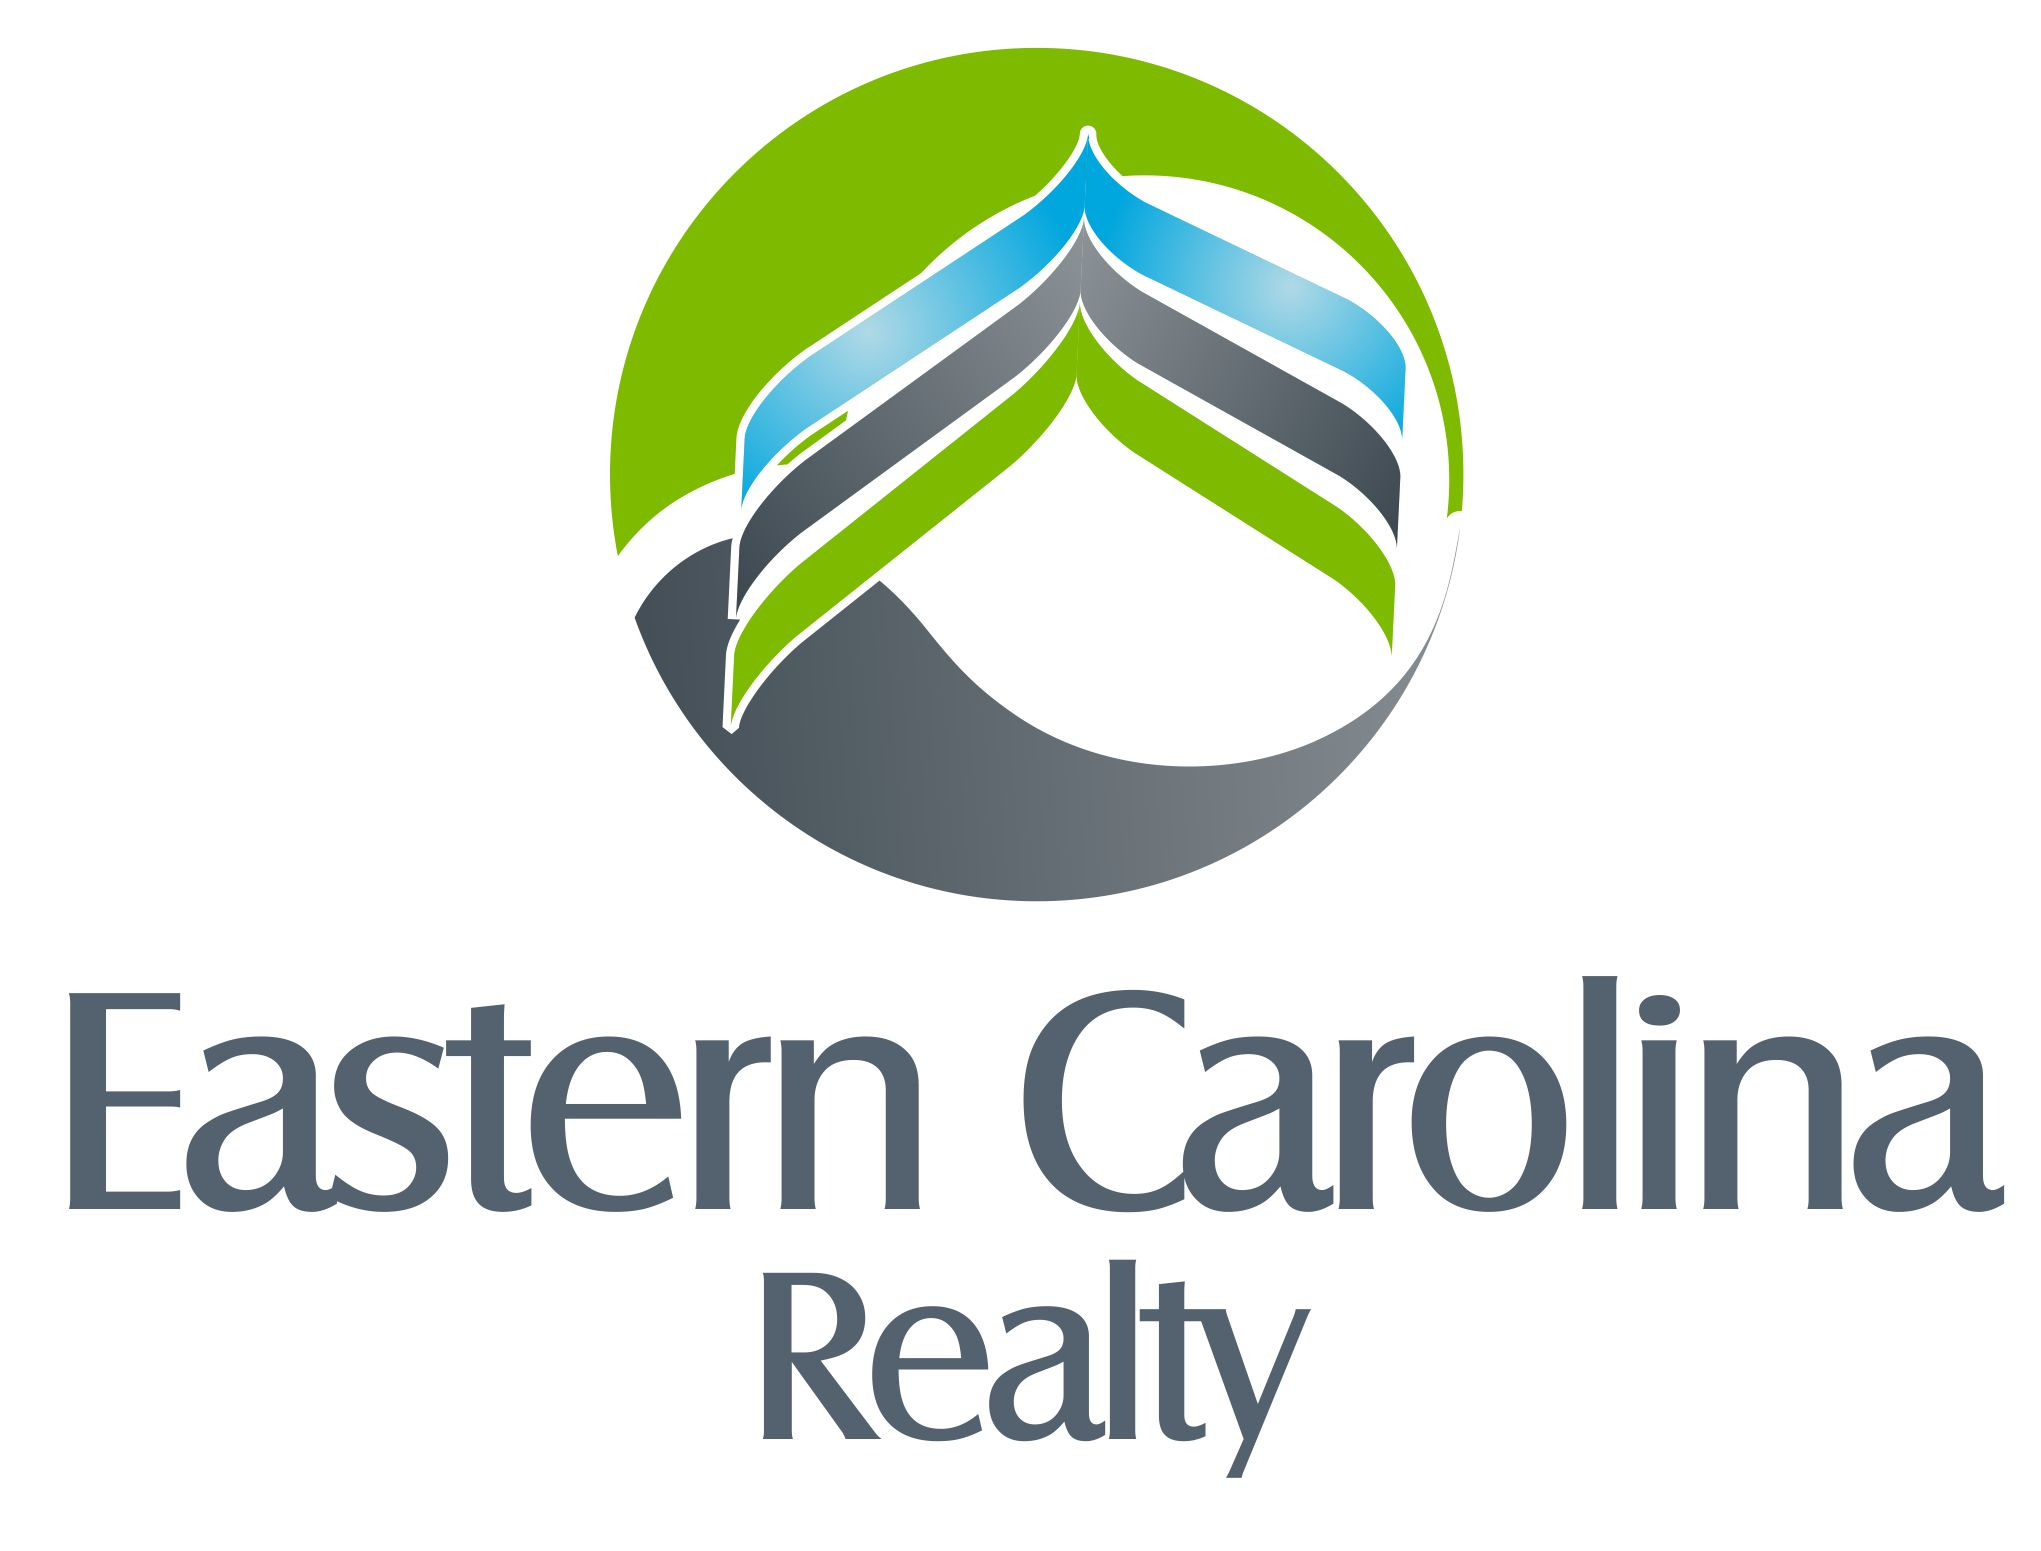 Sandy Shiner - Eastern Carolina Realty Logo